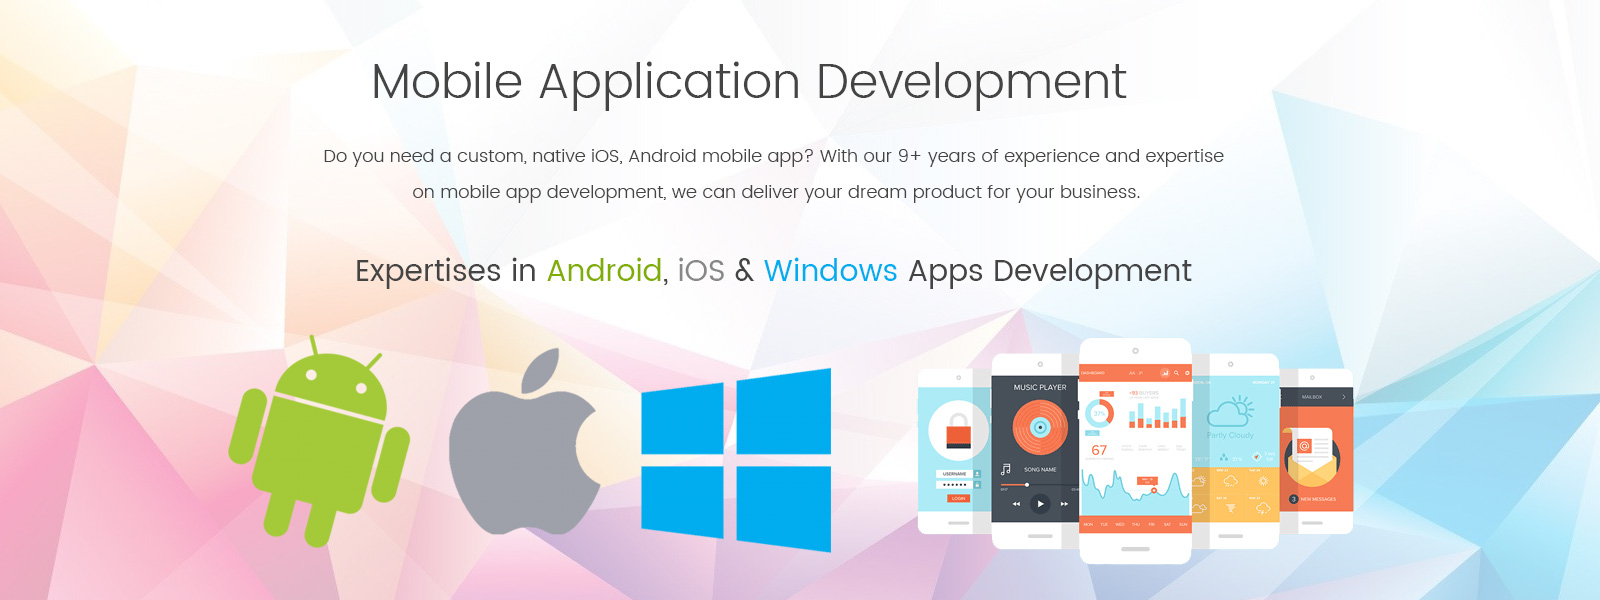 Web & Desktop Application Development in India